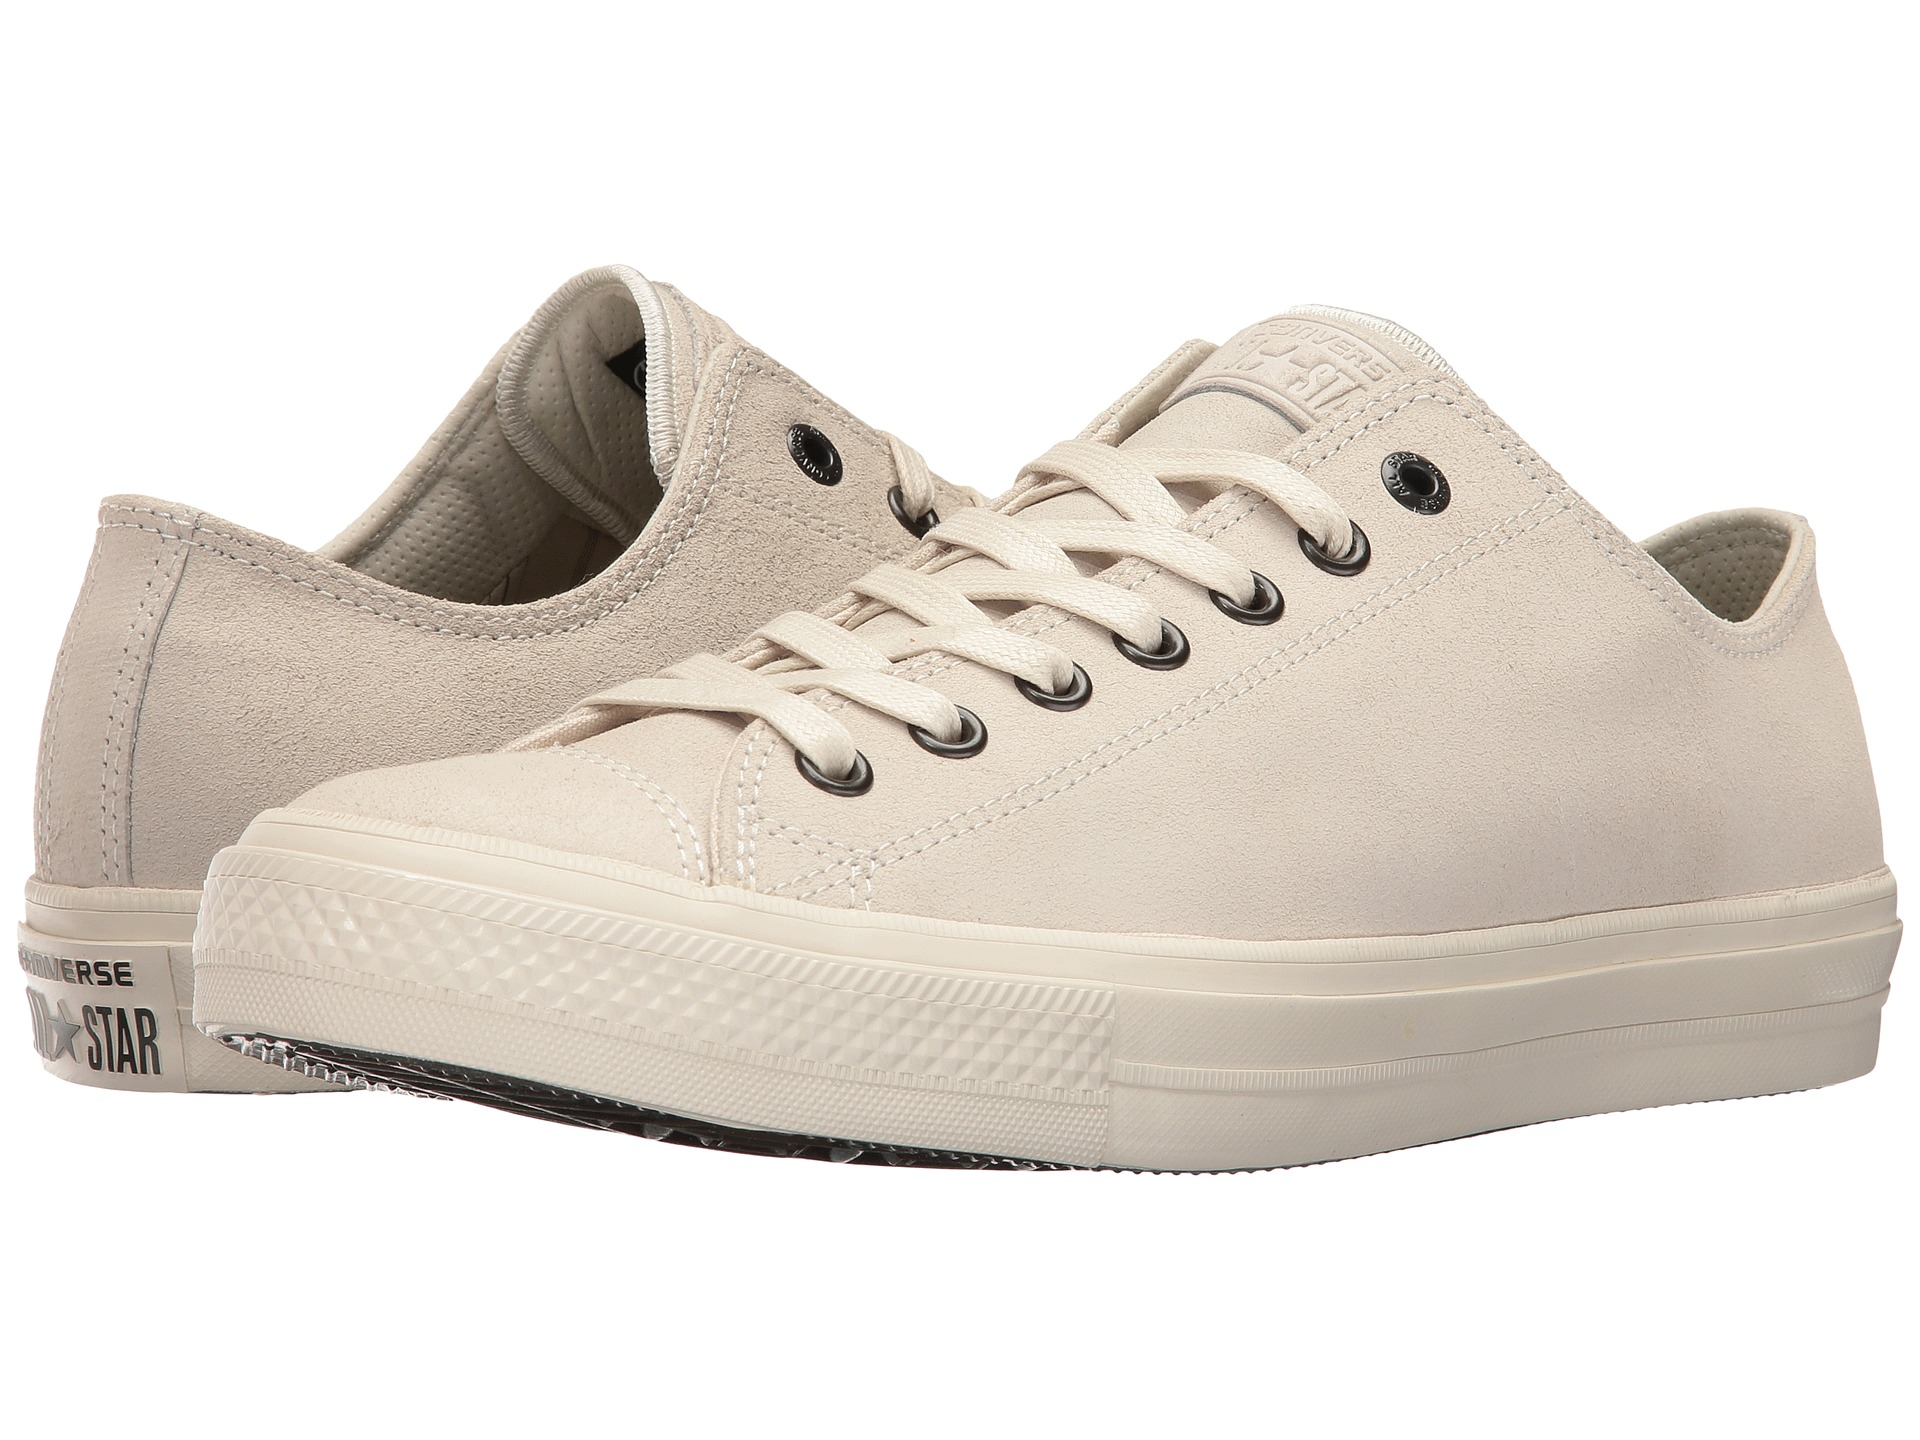 Converse by john varvatos chuck taylor all star ii for Converse chuck ii craft leather low top